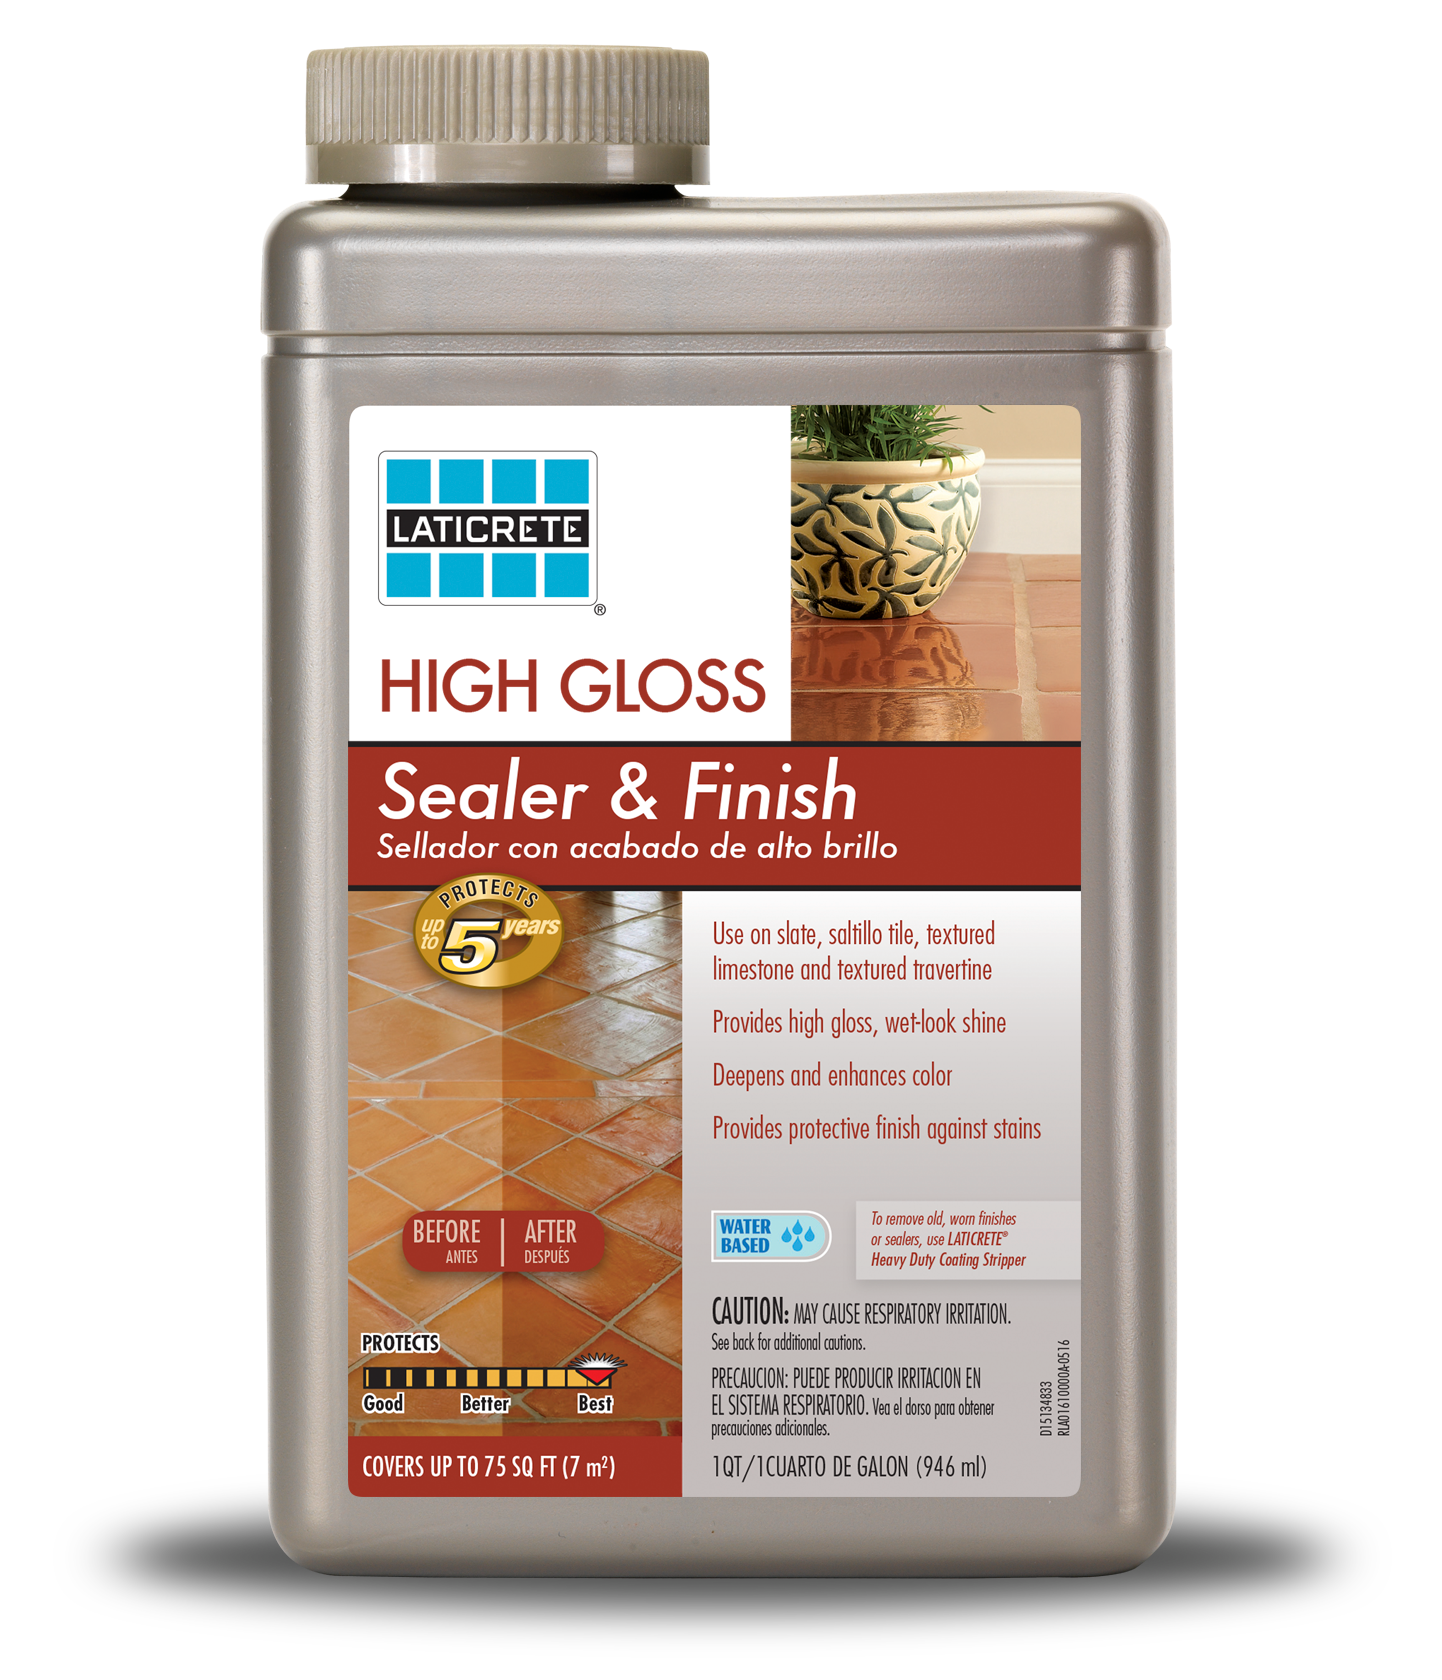 LATICRETE® High Gloss Sealer & Finish